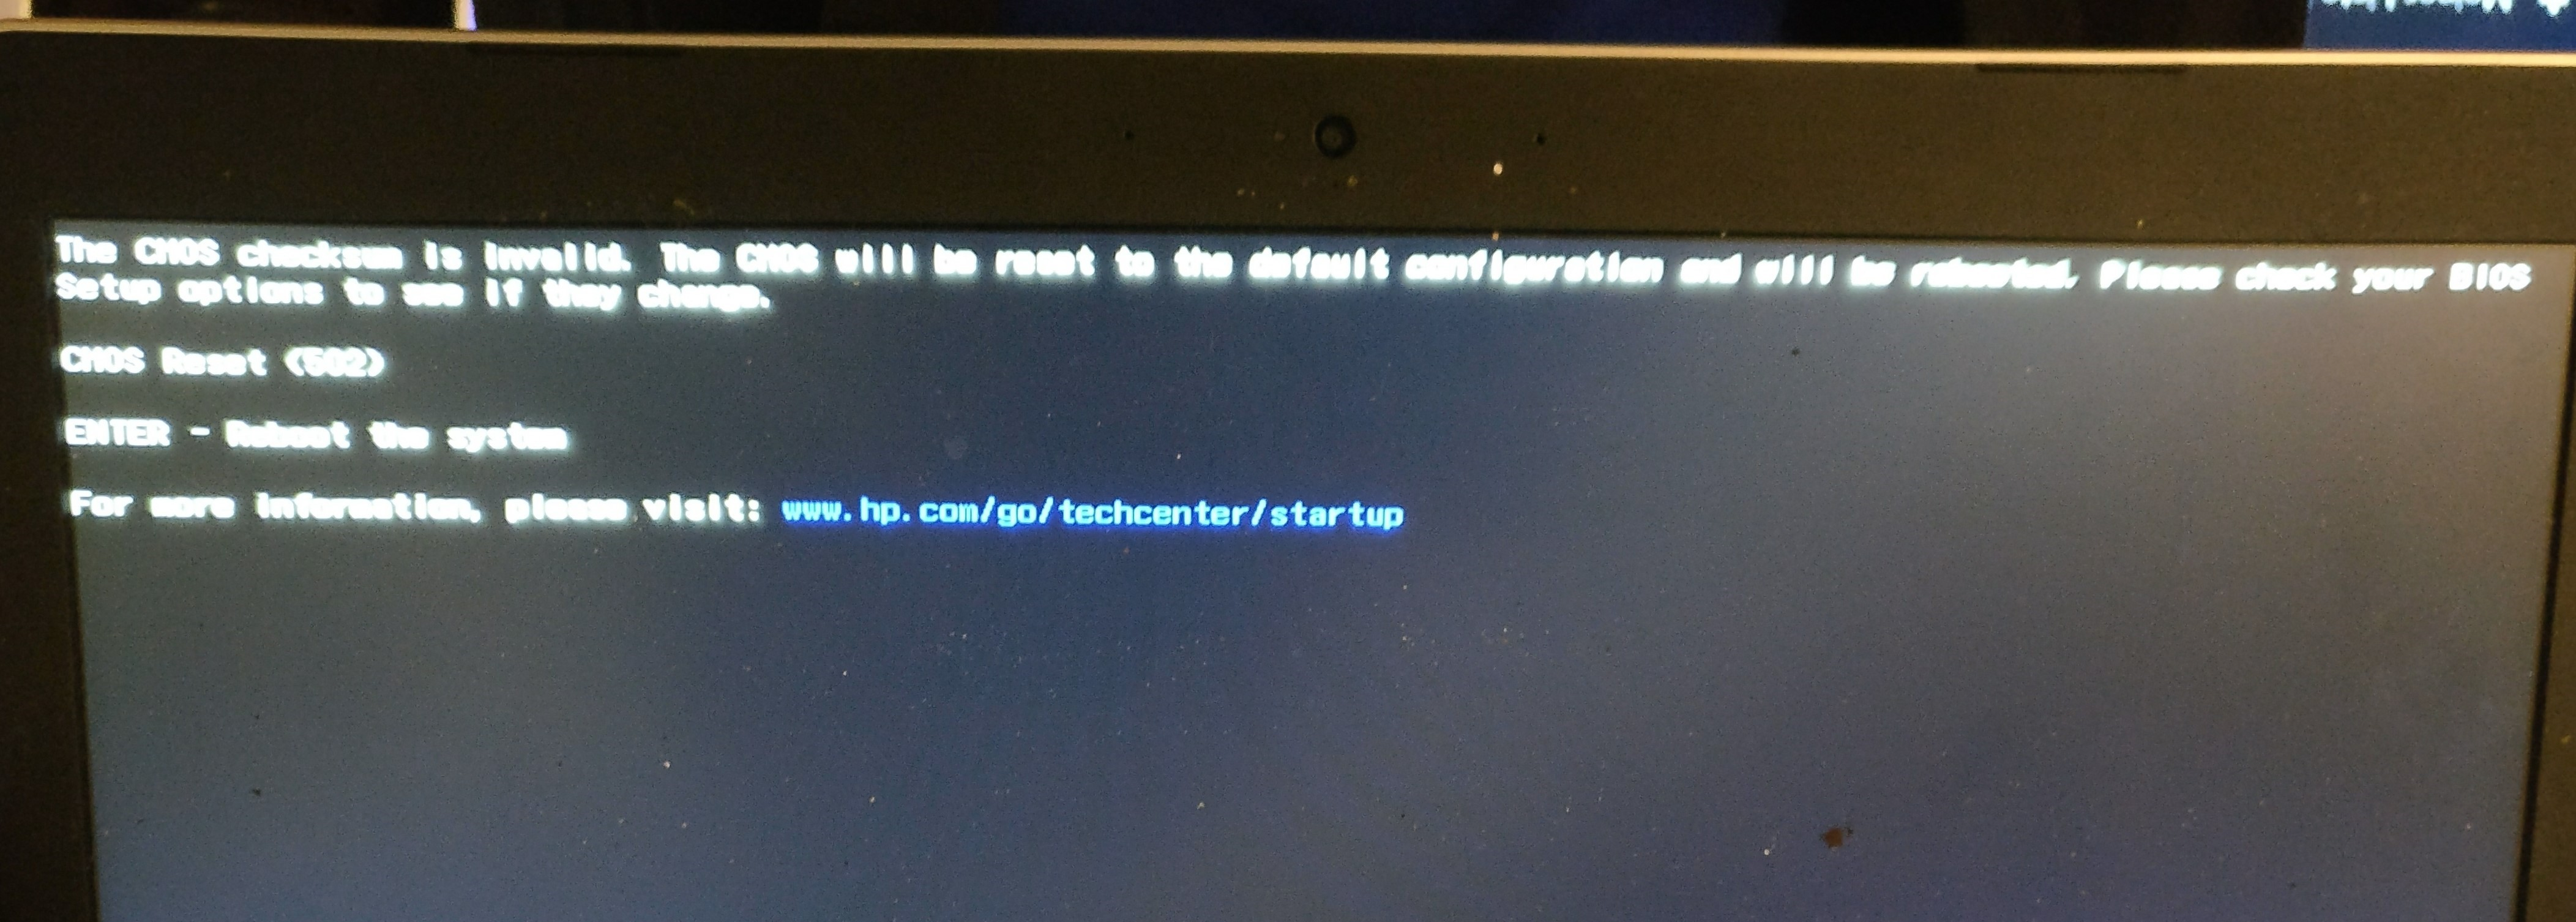 Enter Administrator password or power on password - HP